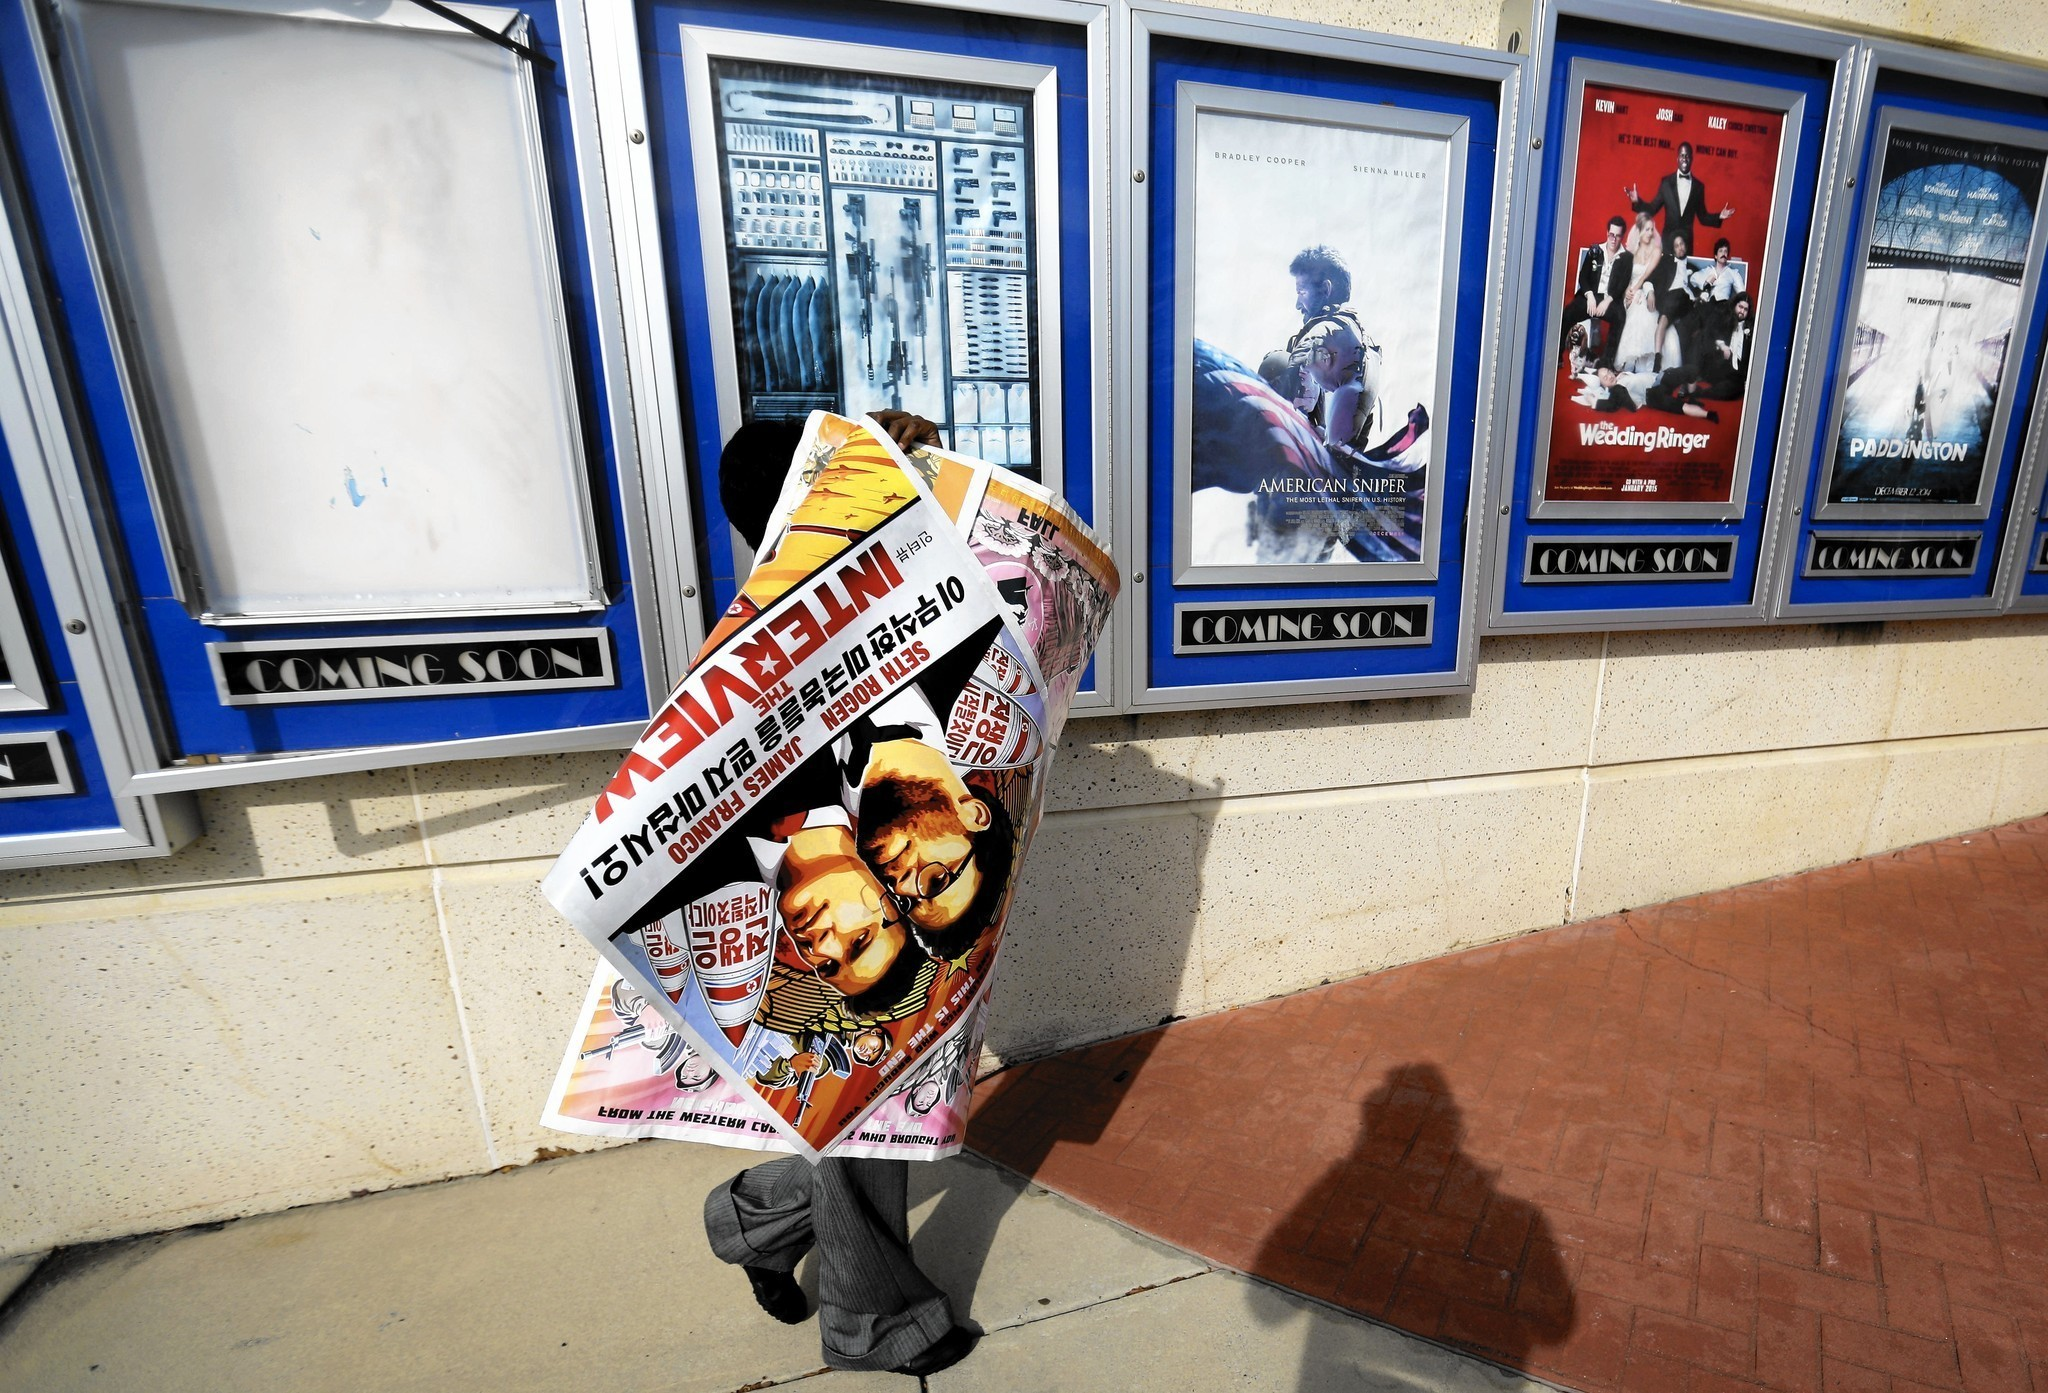 Don't let North Korea have the final say on 'The Interview'